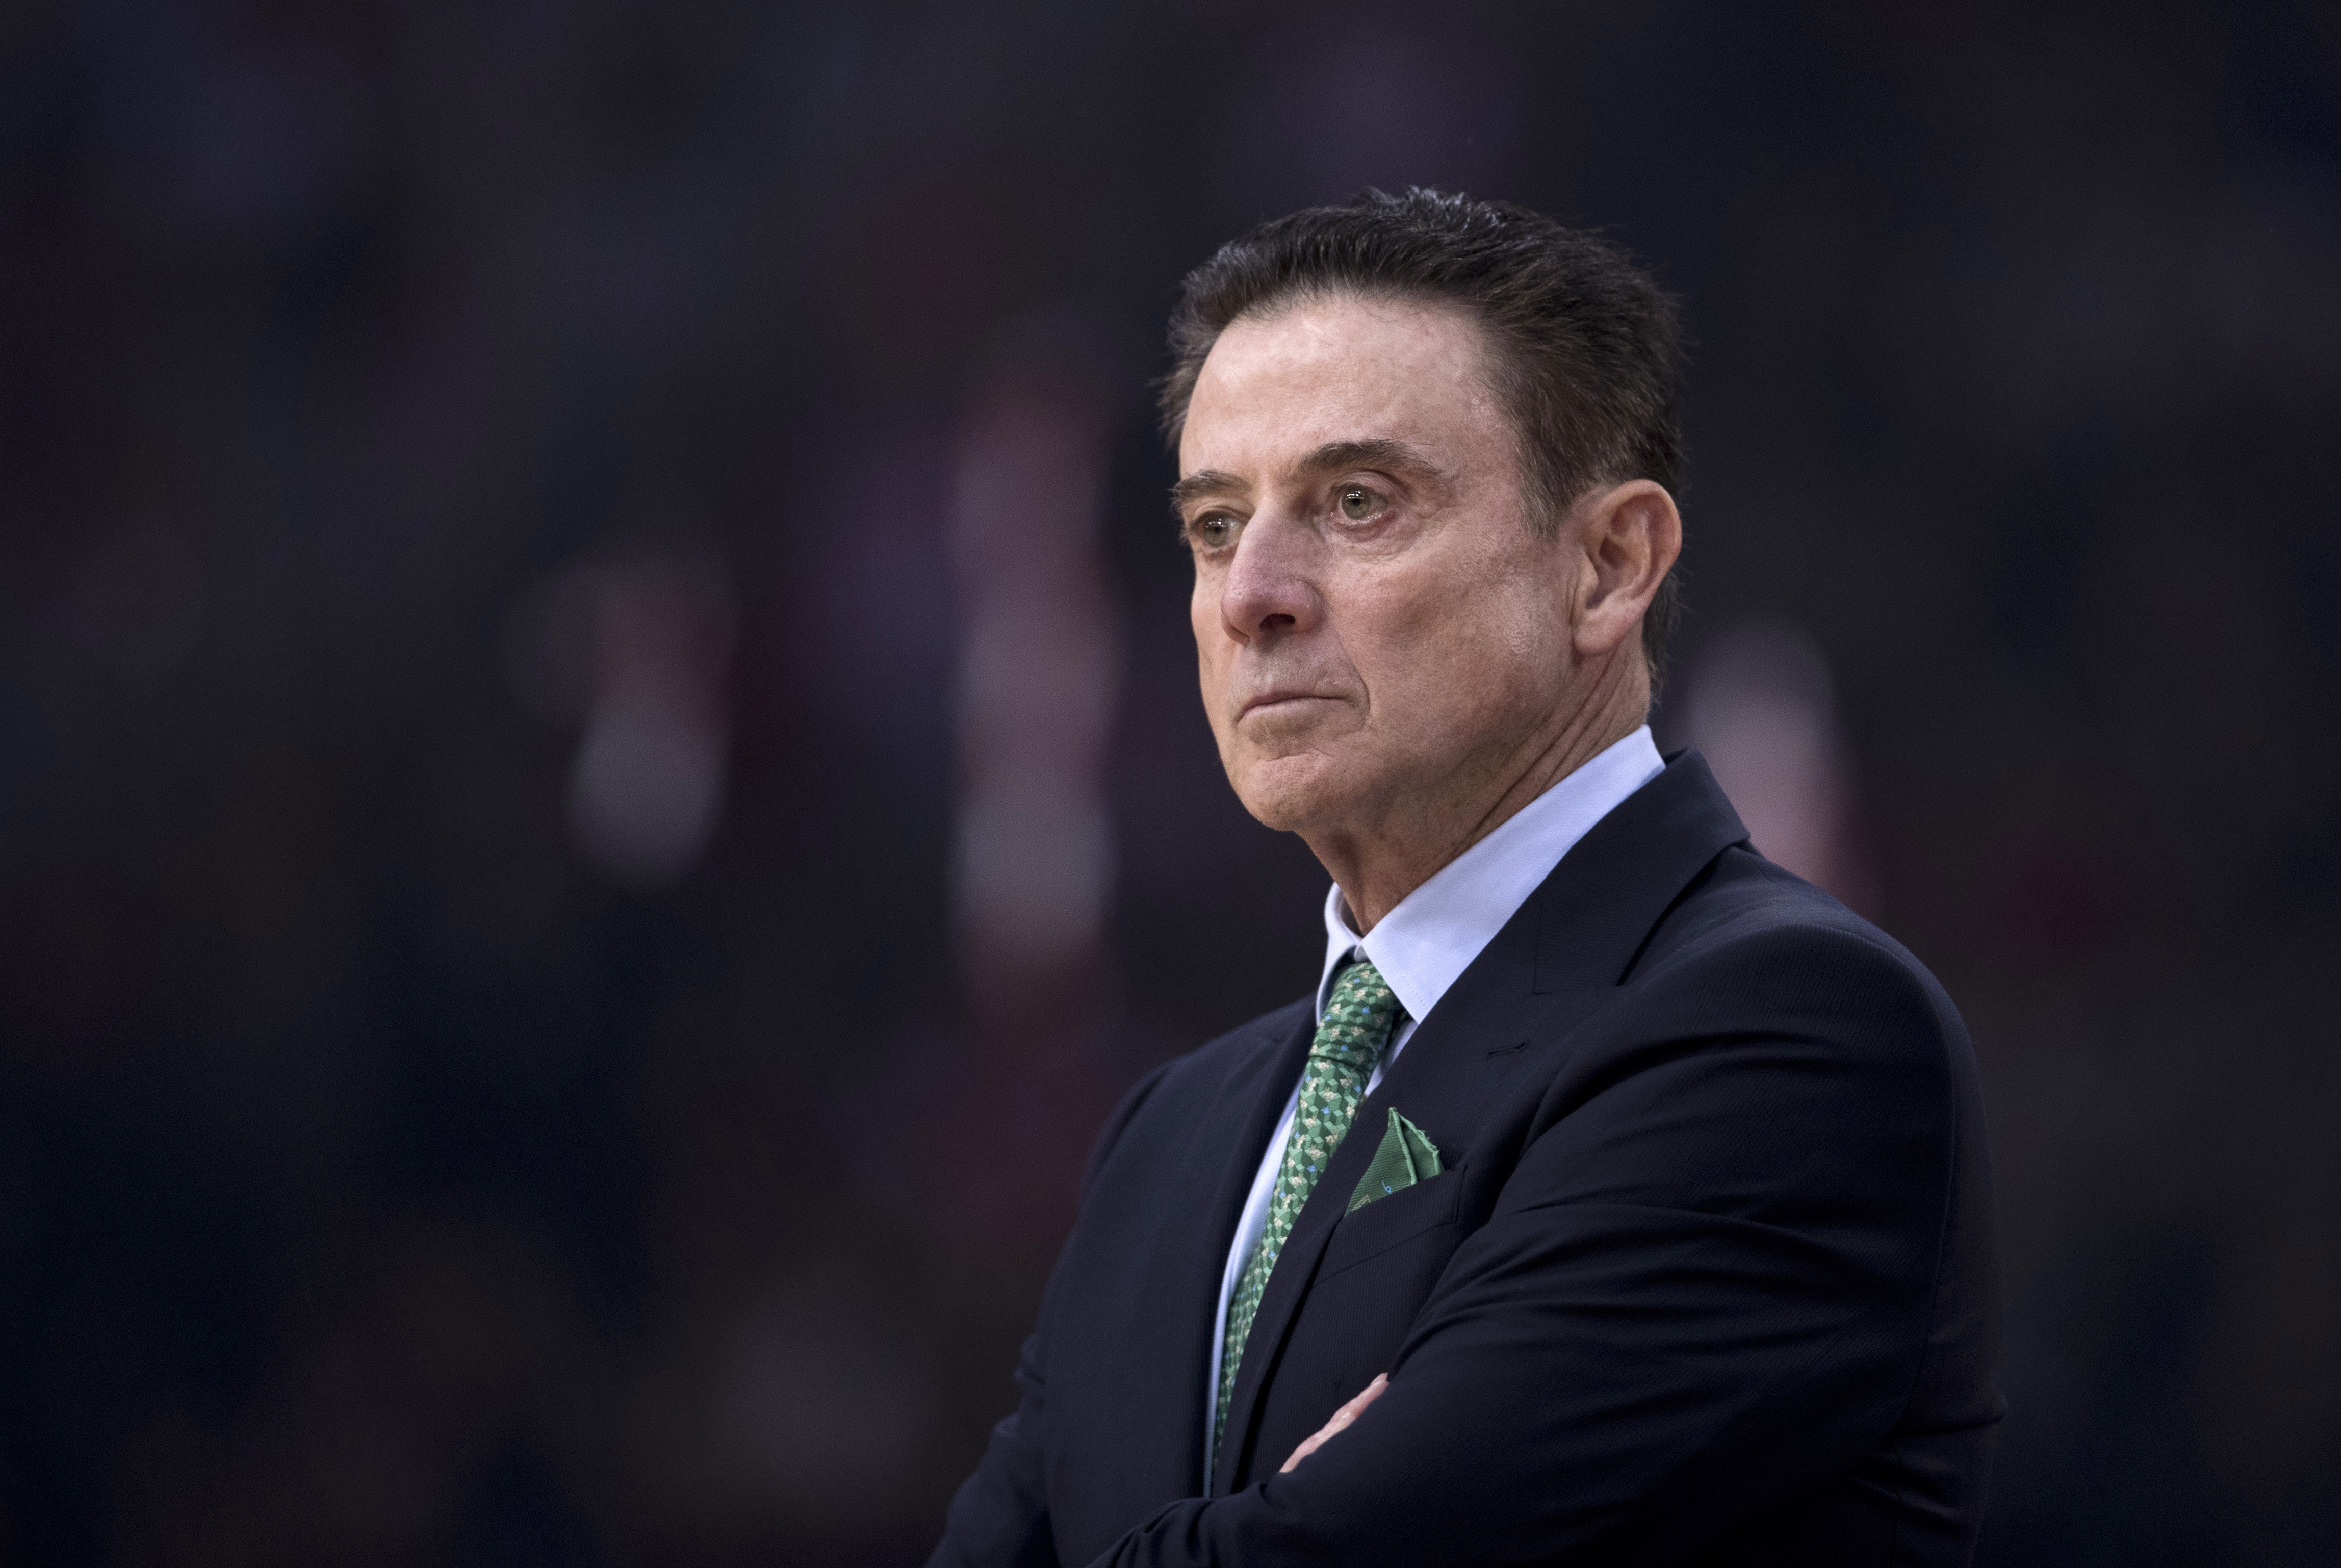 Louisville, Rick Pitino settle breach of contract lawsuit